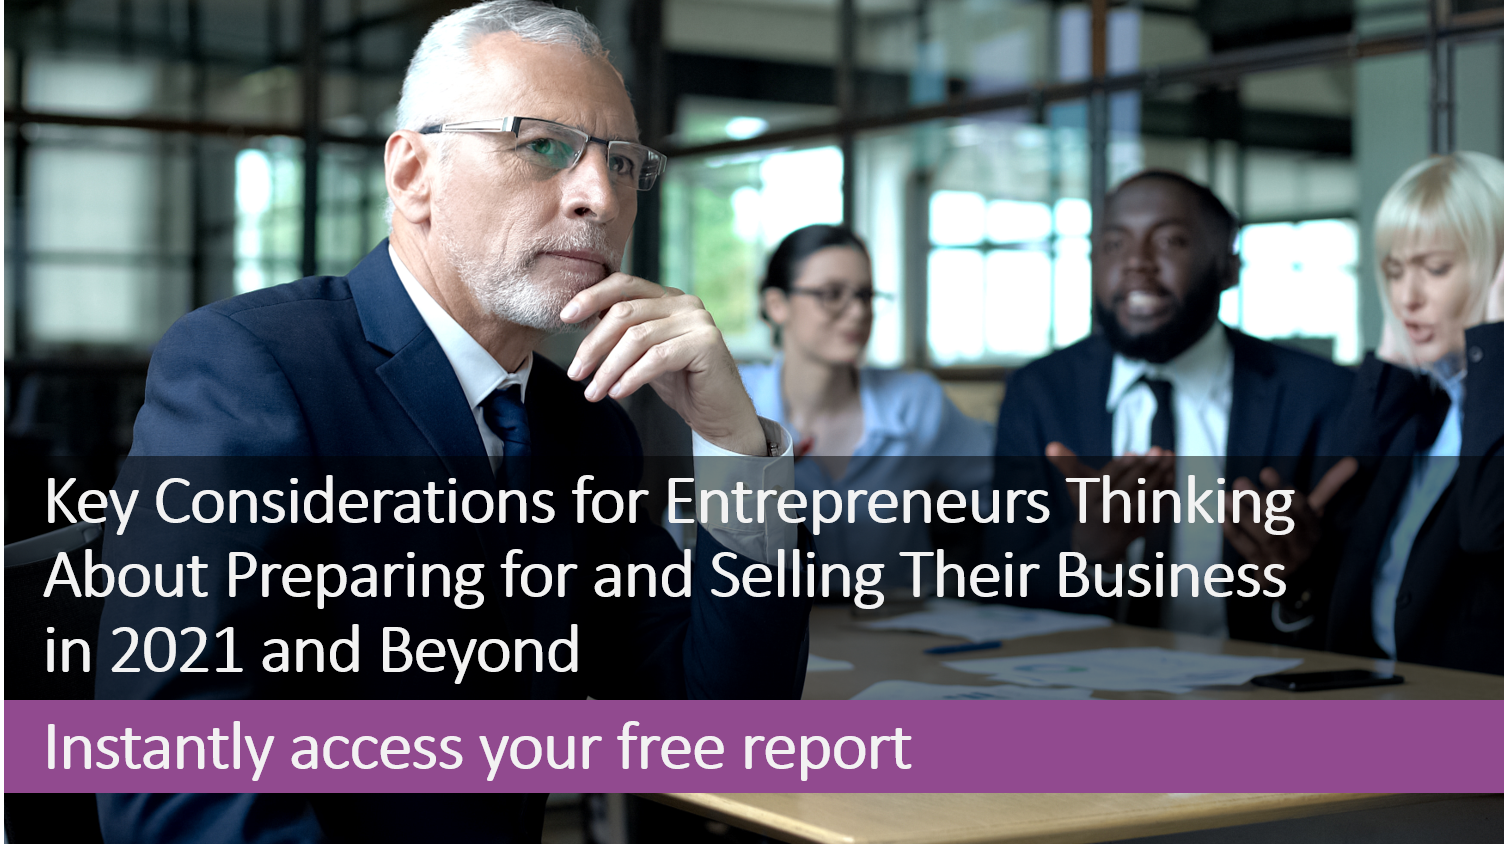 Selling your business in 2021 - free report